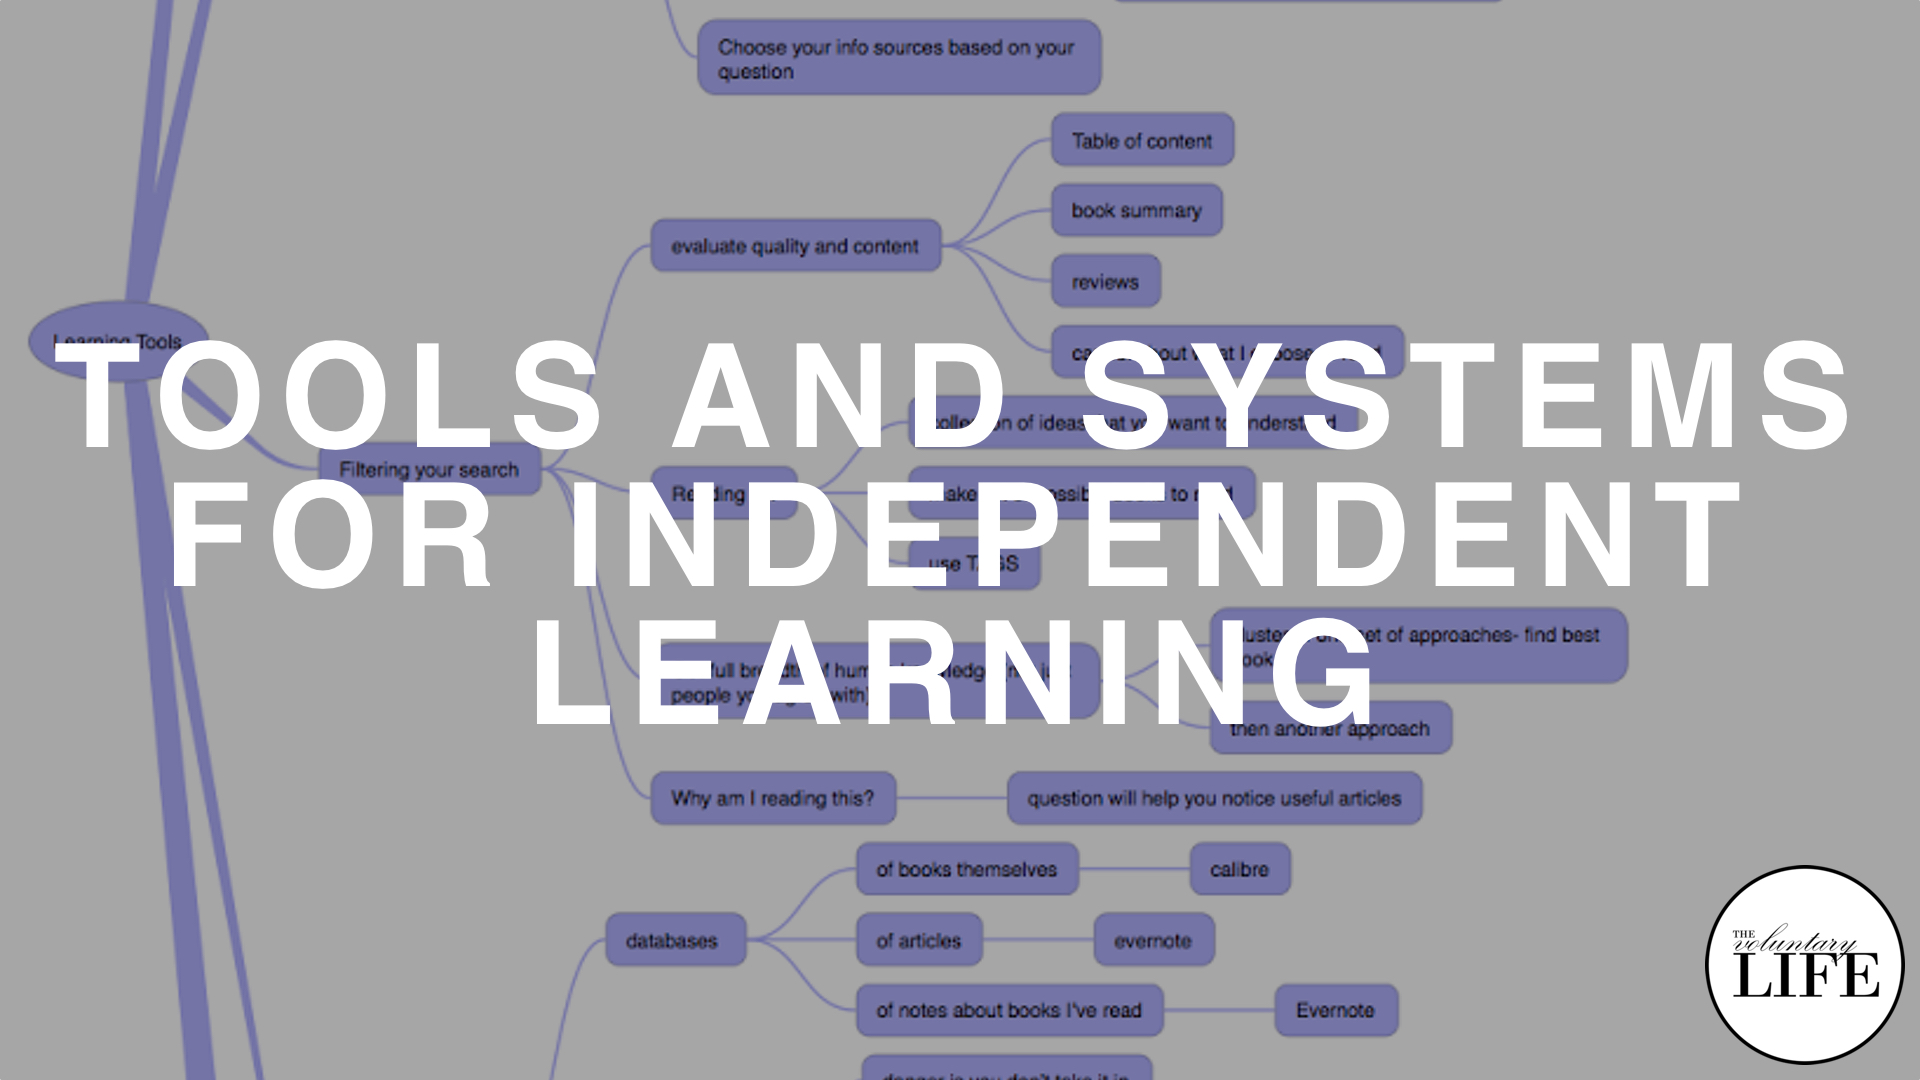 201 Tools And Systems for Independent Learning